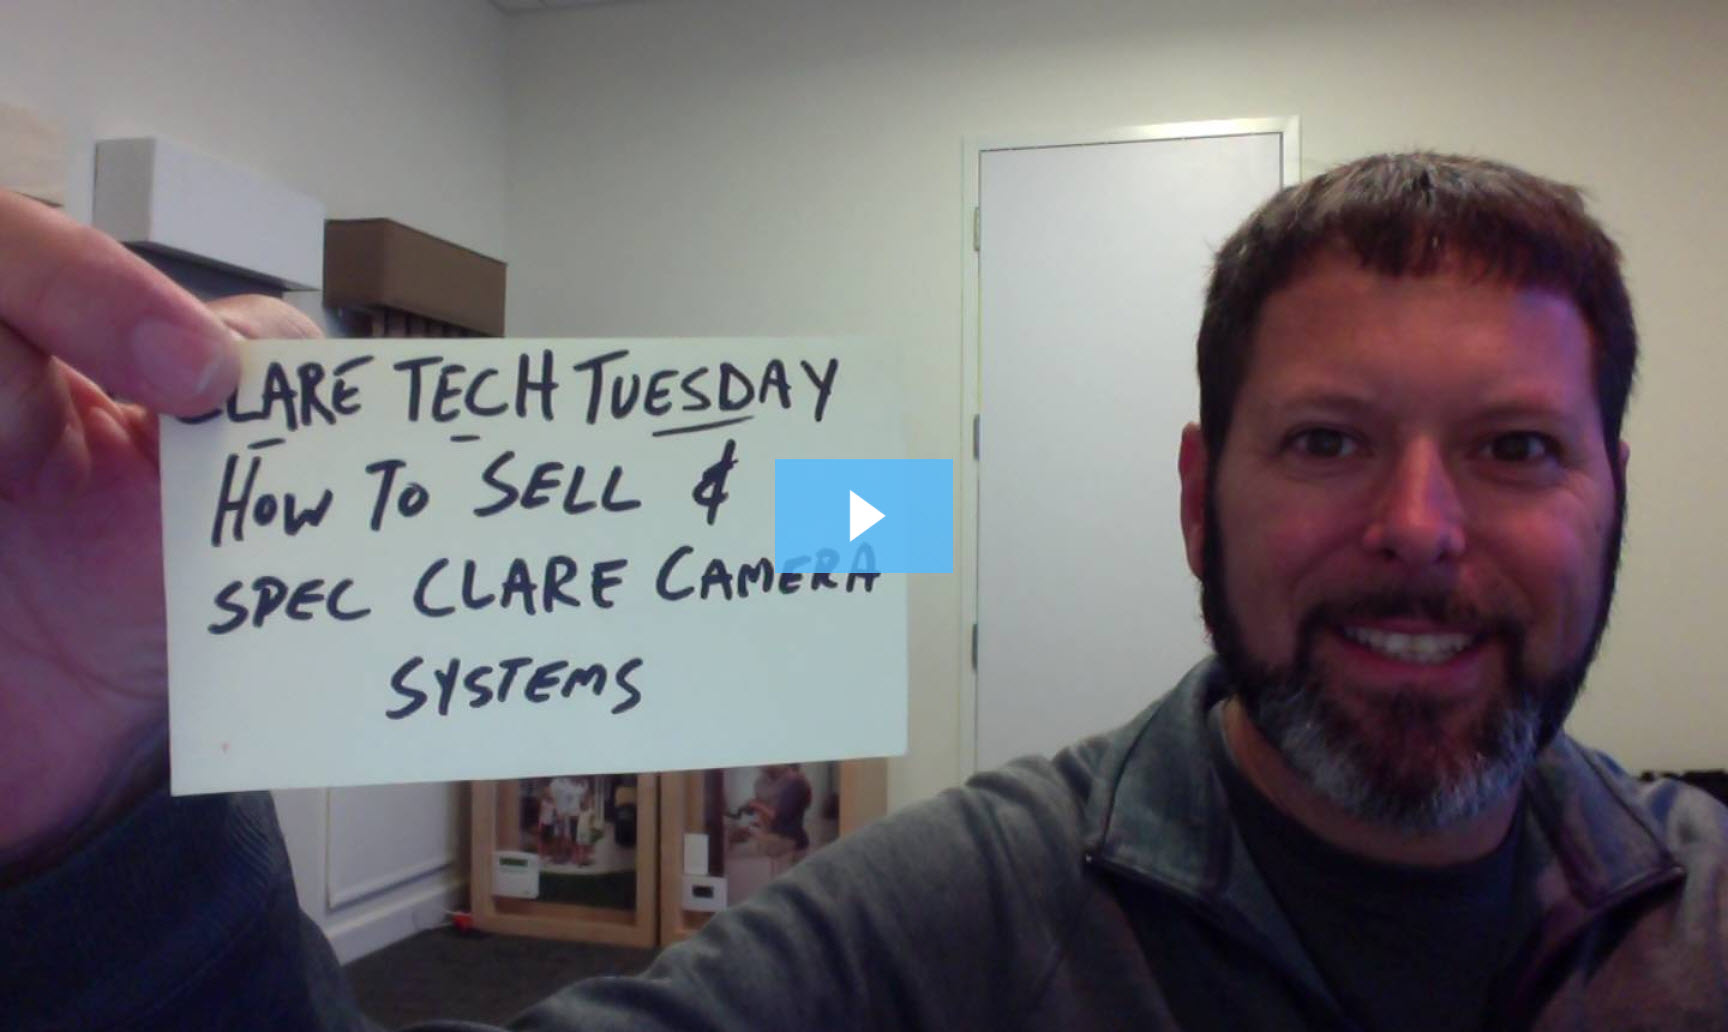 Clare Tech Tuesday: How to Sell & Spec Clare Camera Systems